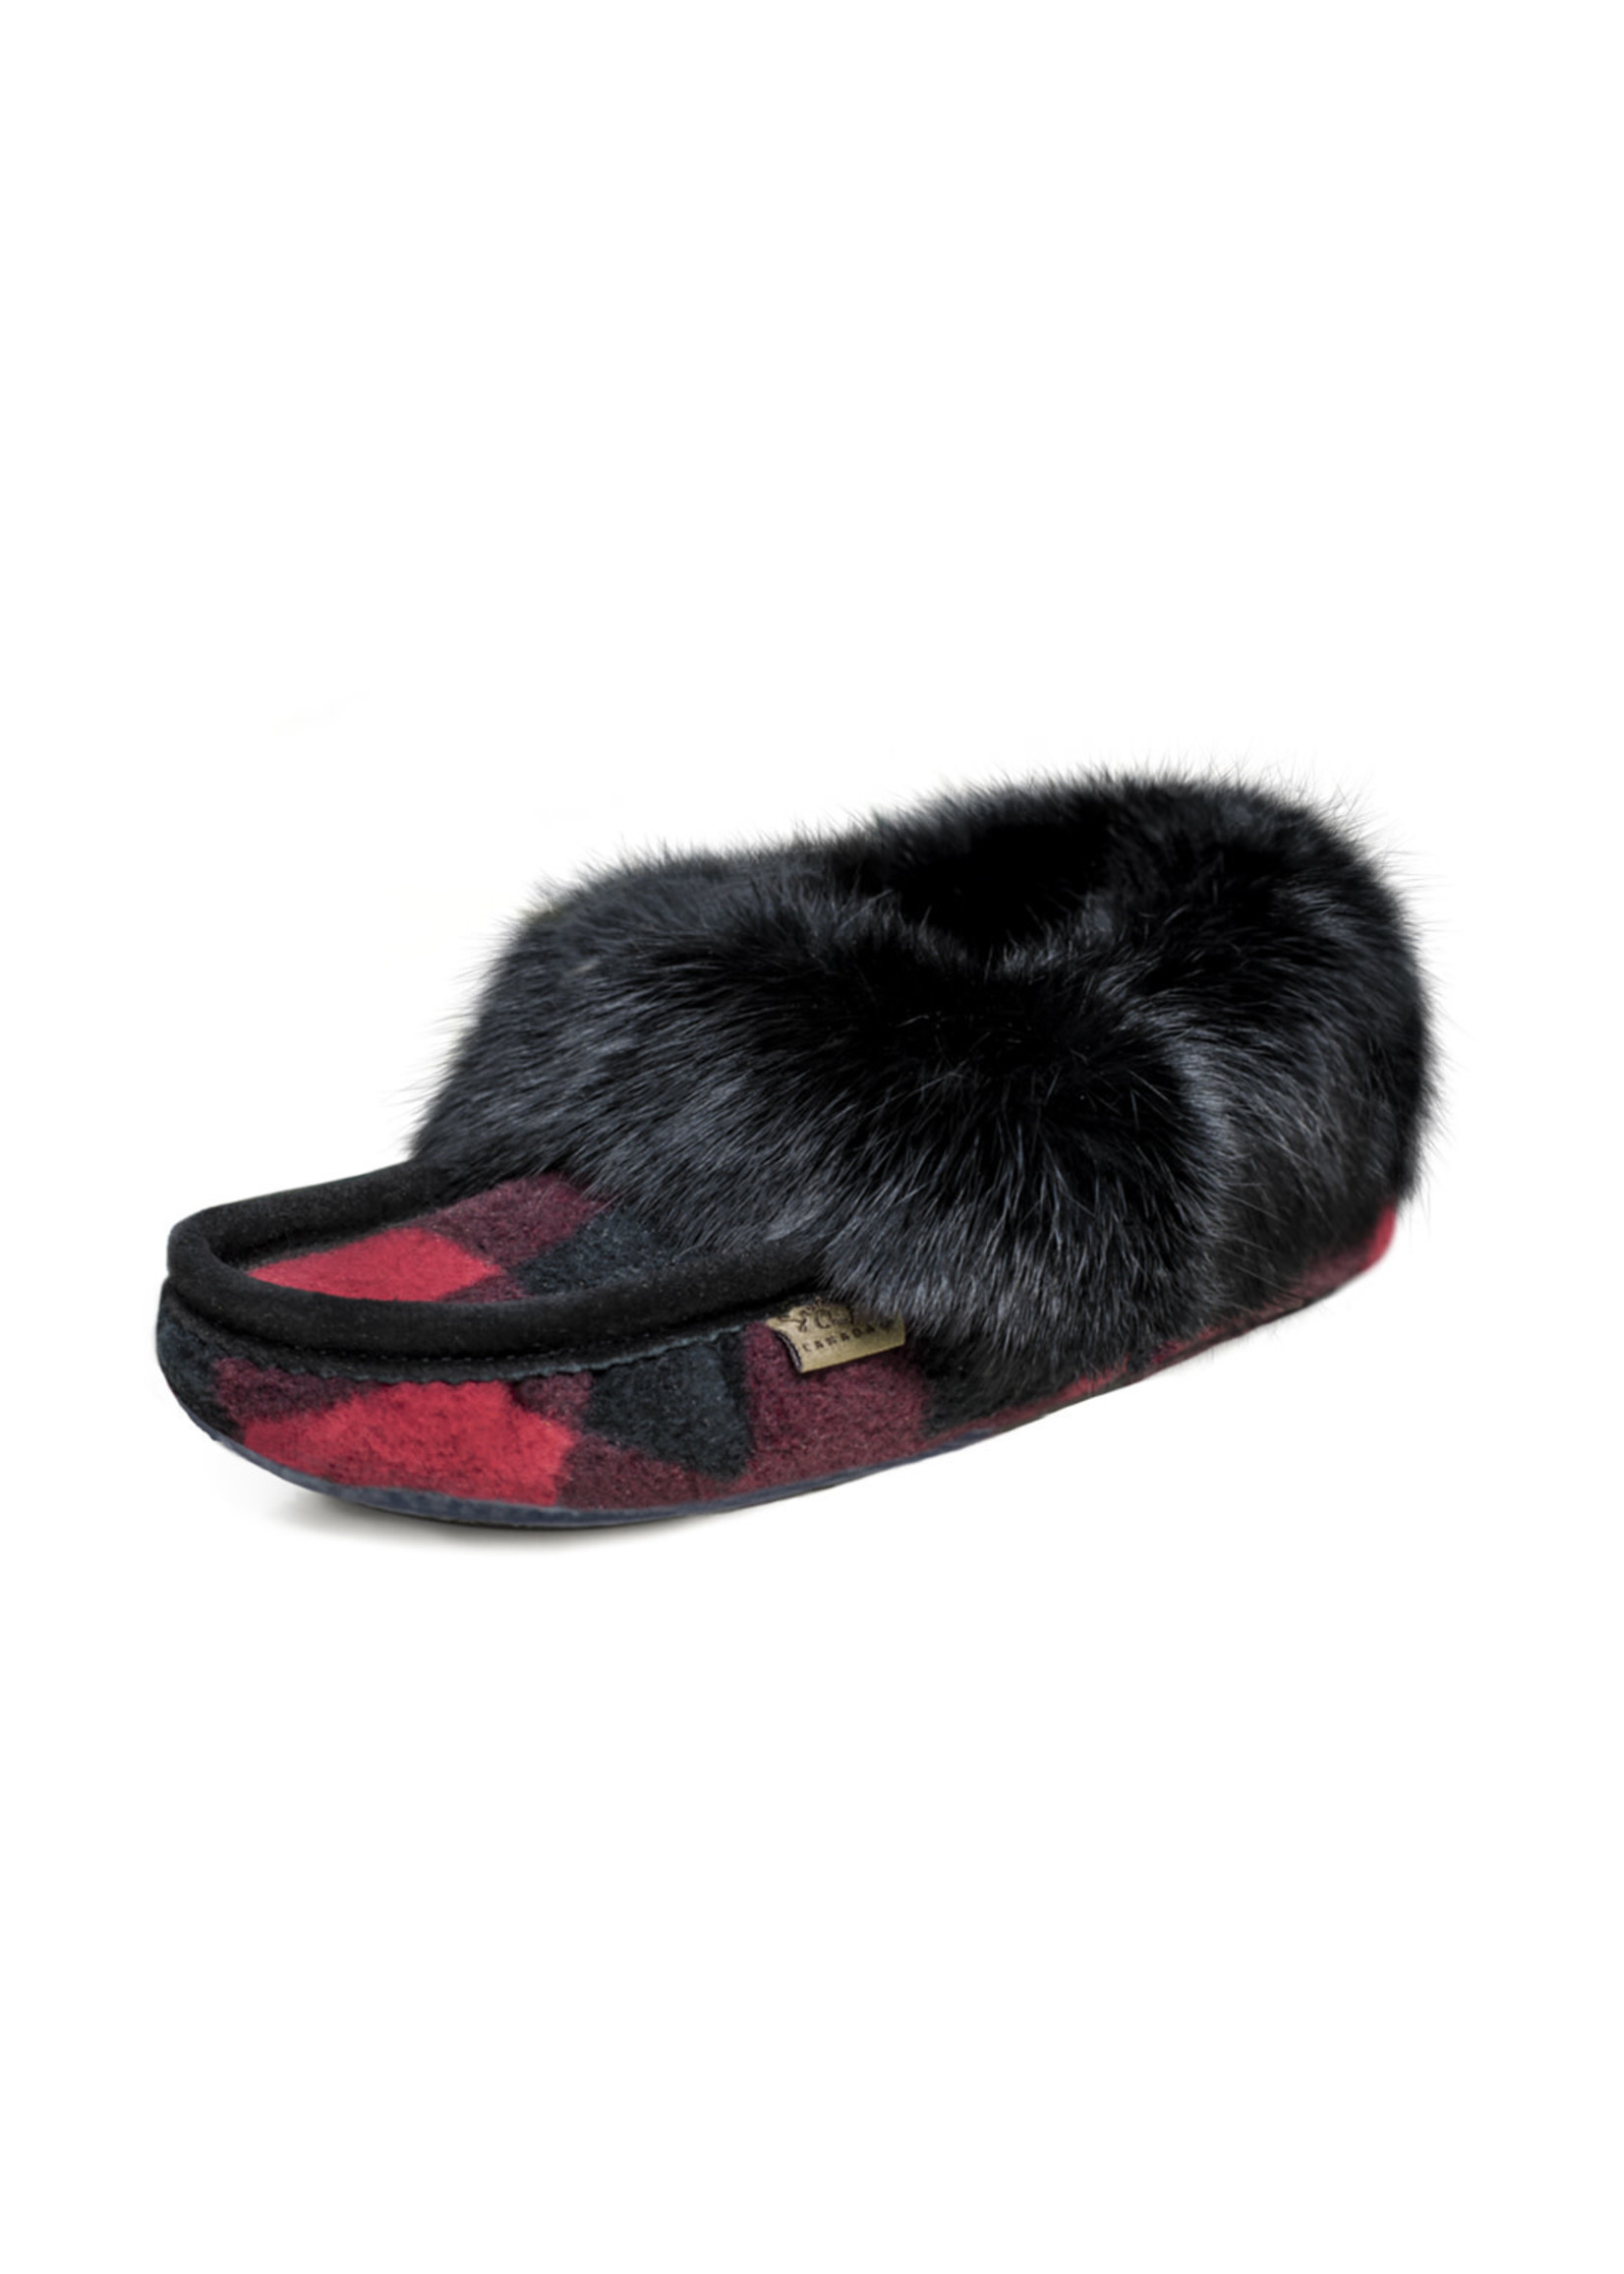 LAURENTIAN CHIEF SUEDE SLIPPERS 606L